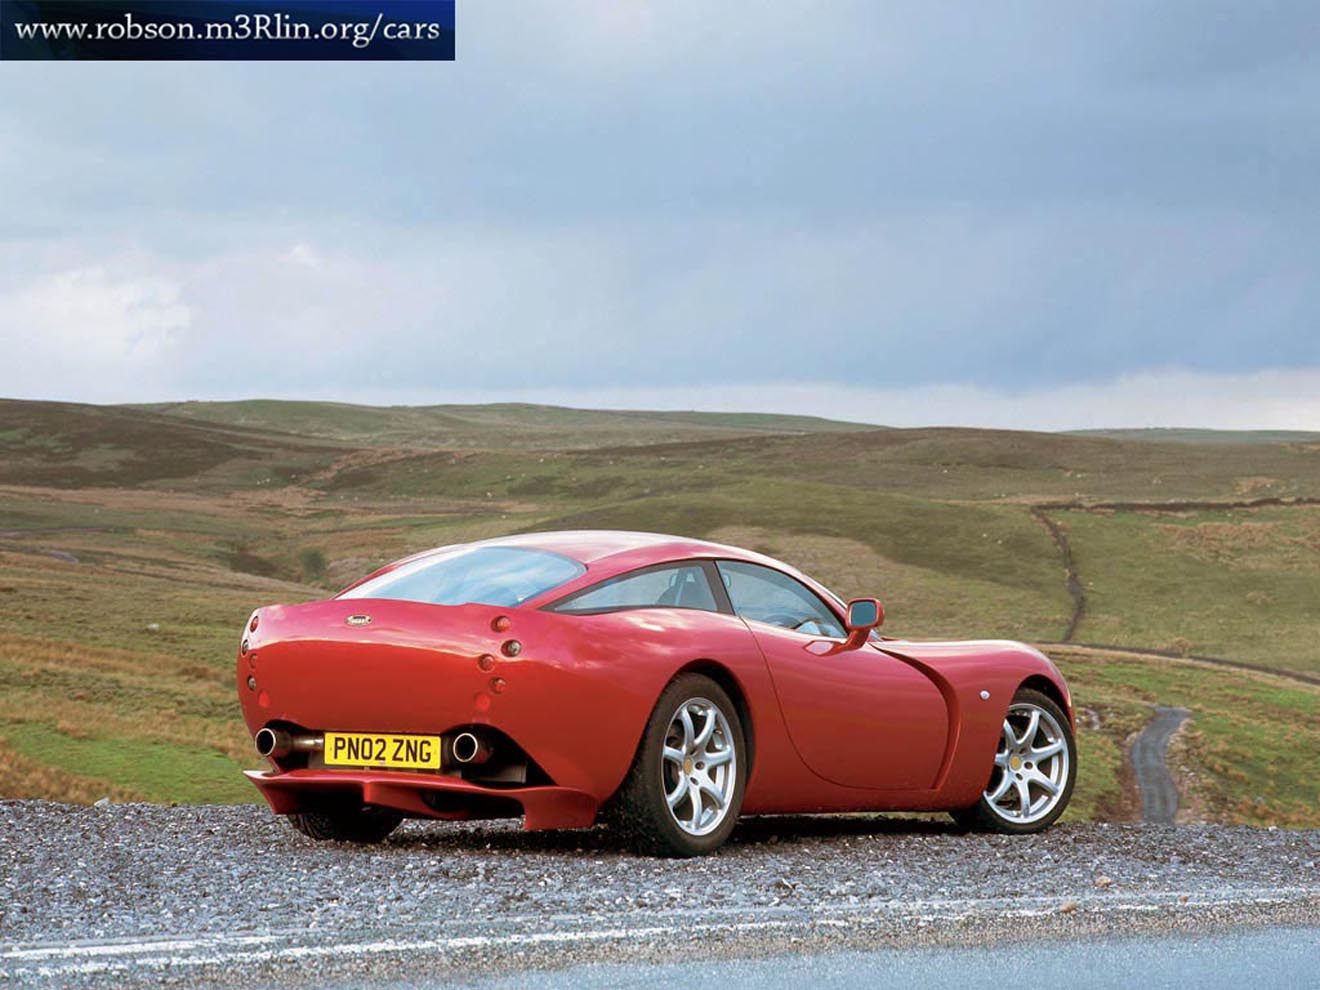 Tvr t440r photo - 9